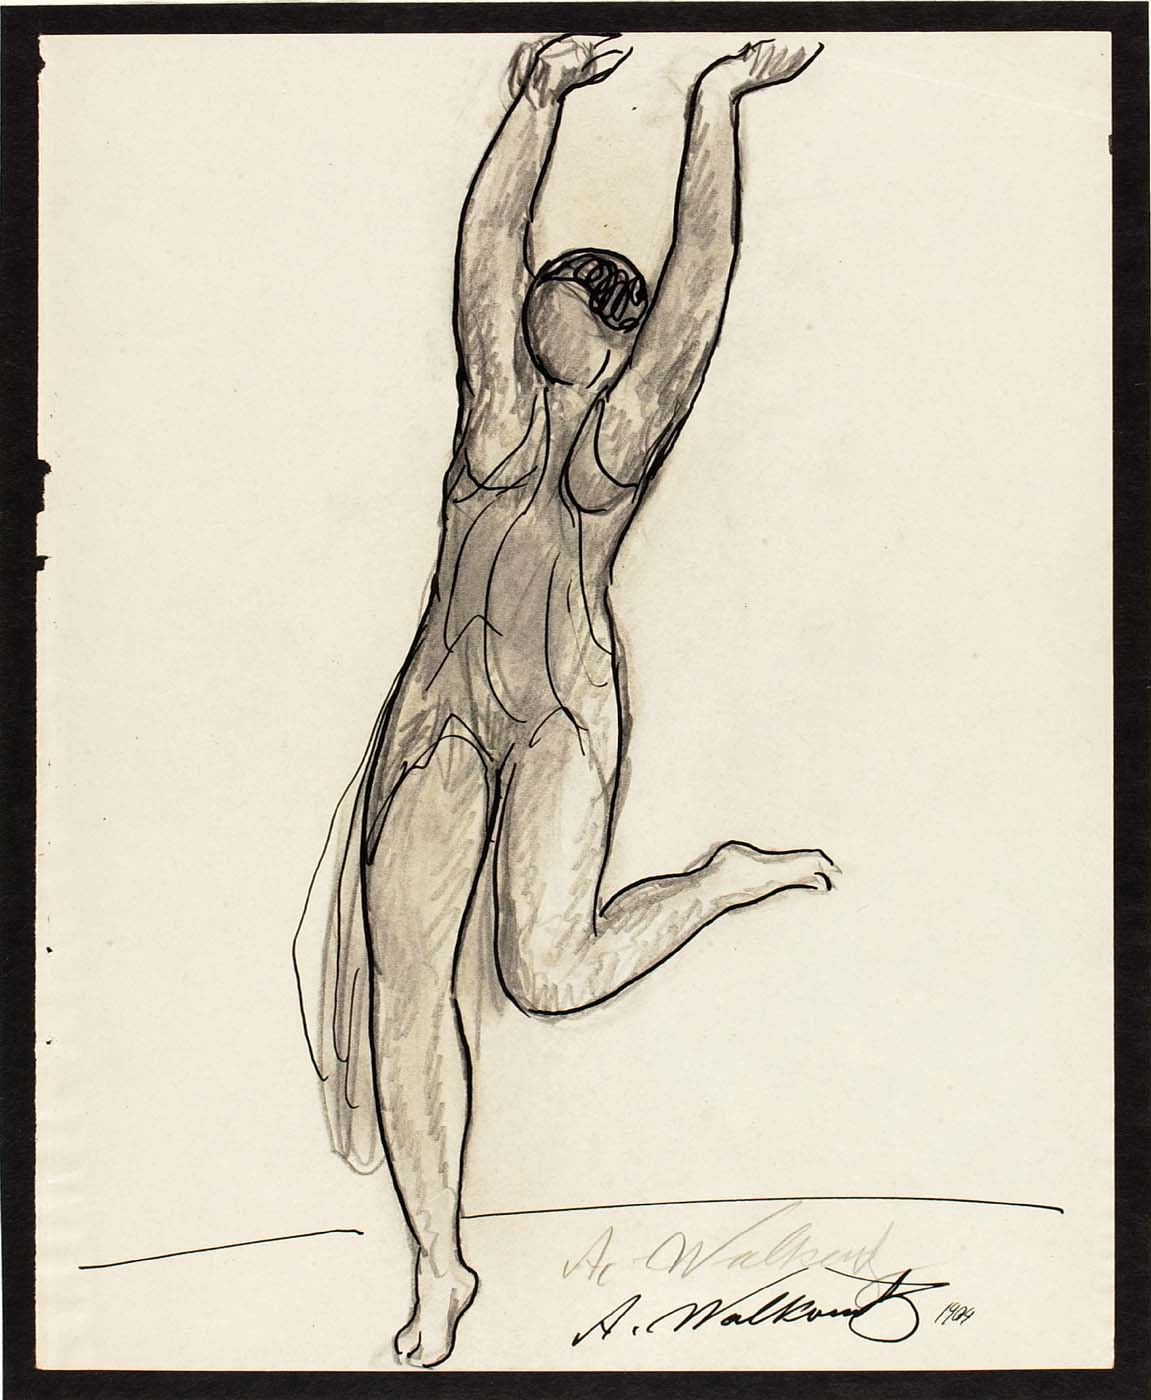 Abraham Walkowitz, Isadora Duncan , 1909 pencil and pen and ink on paper © American Art Museum